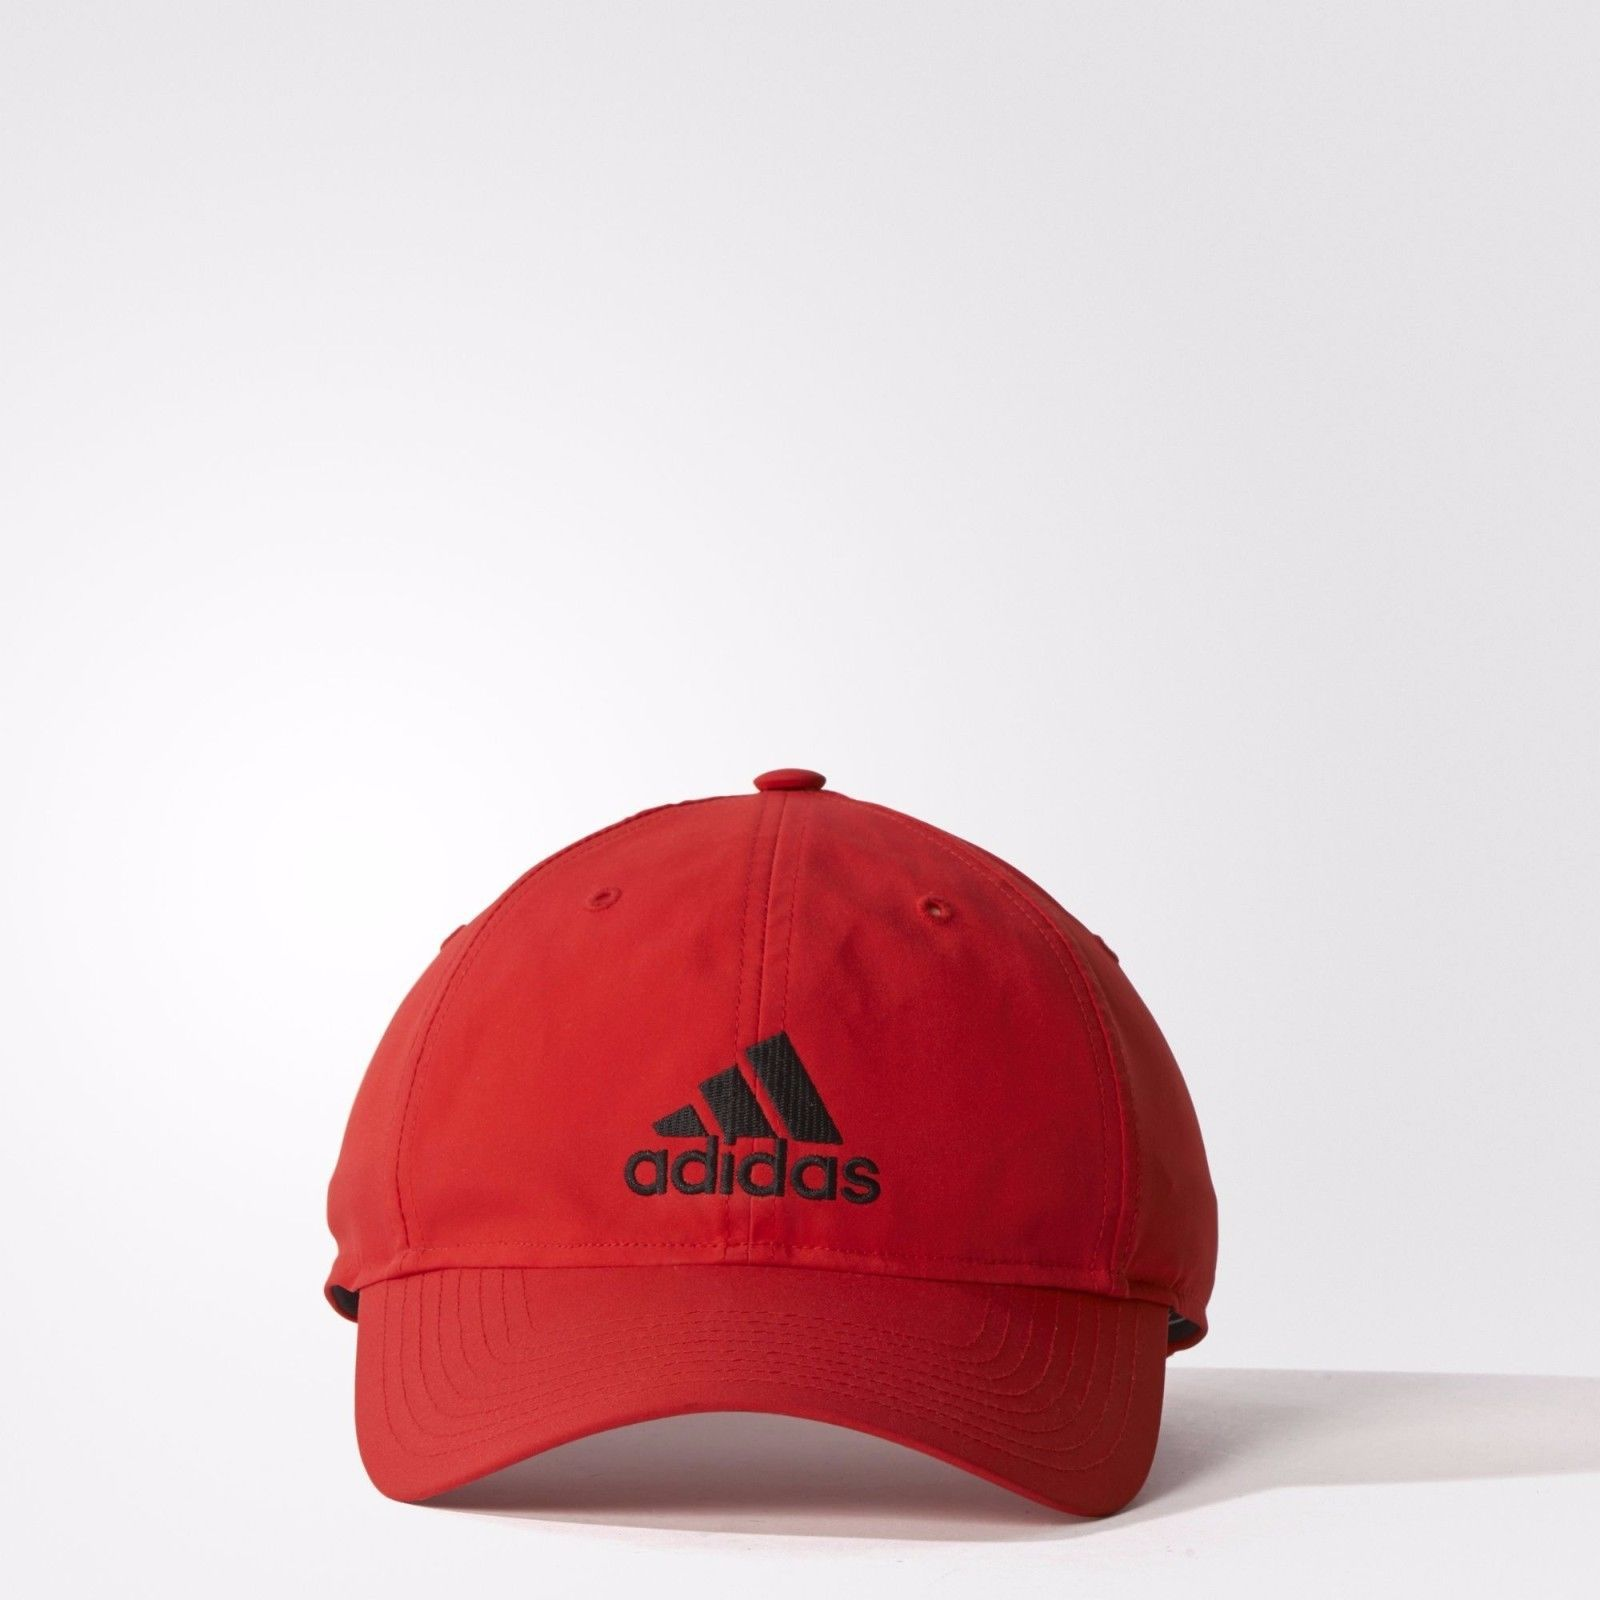 5ab3ec0d0056f New Adidas Training Performance Logo Cap Osfm and 50 similar items